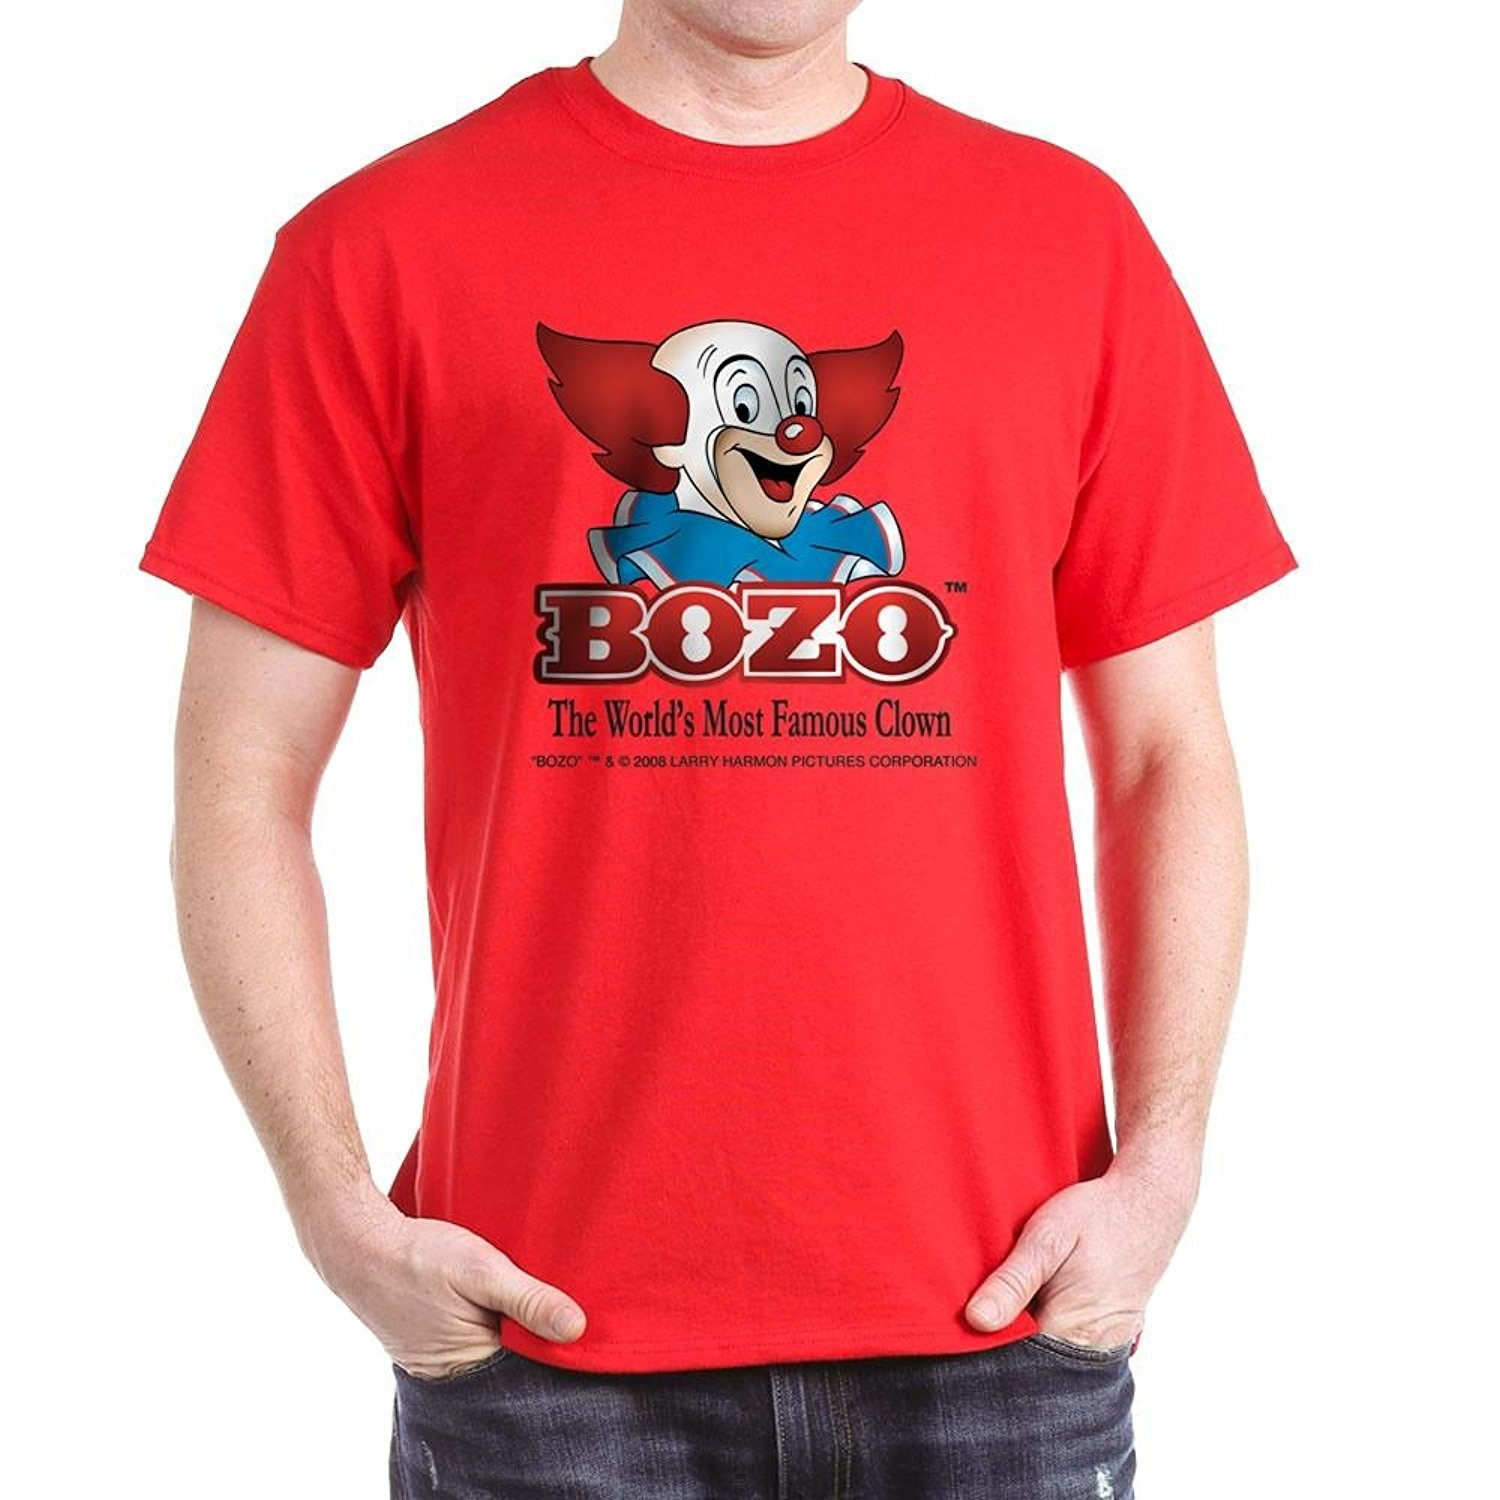 Bozo Face T-Shirt - 100% Cotton T-Shirt